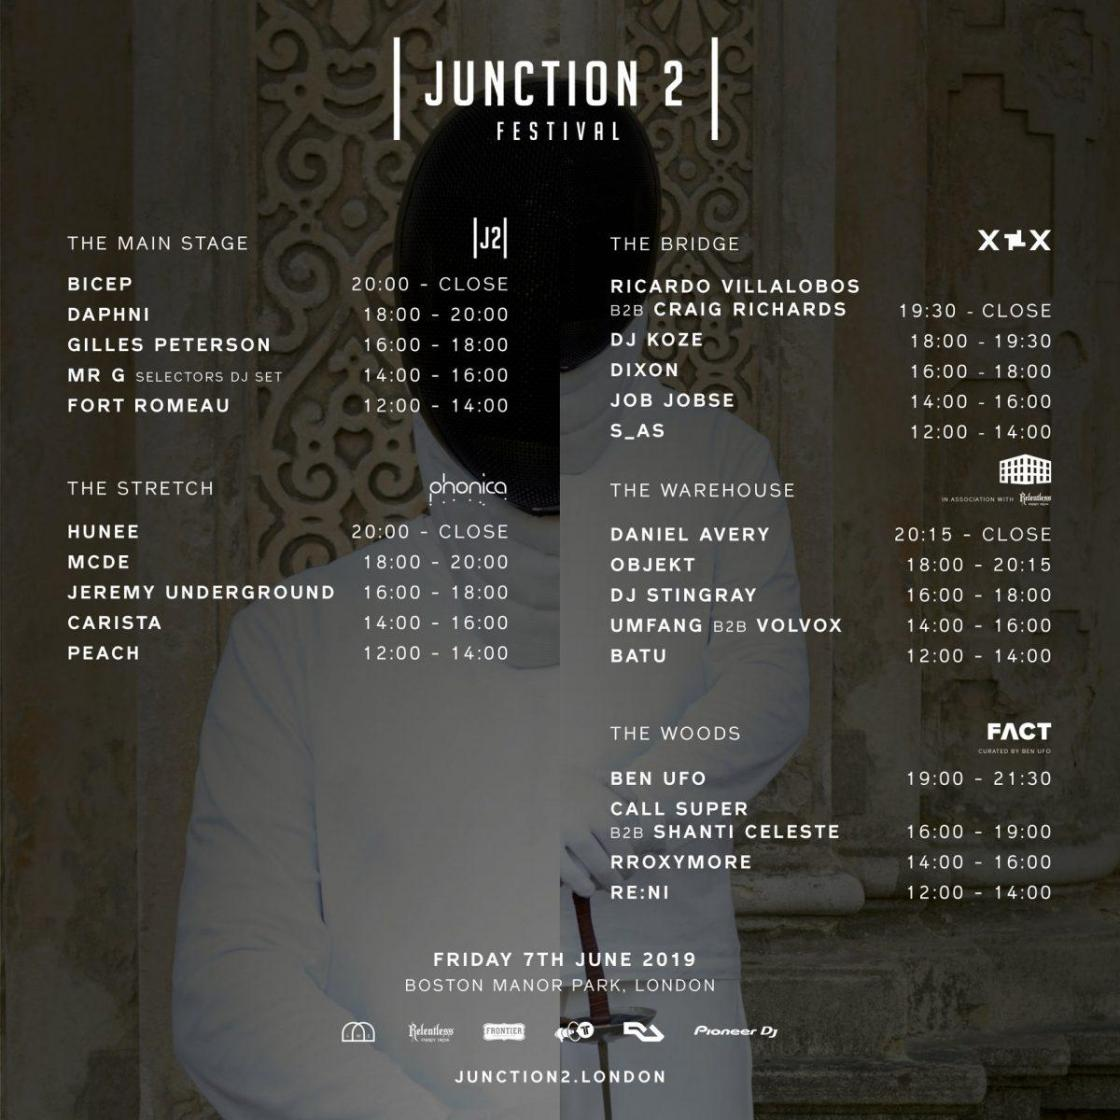 Only 1 week go until we open our doors for Junction 2 2019! Here's the set times...